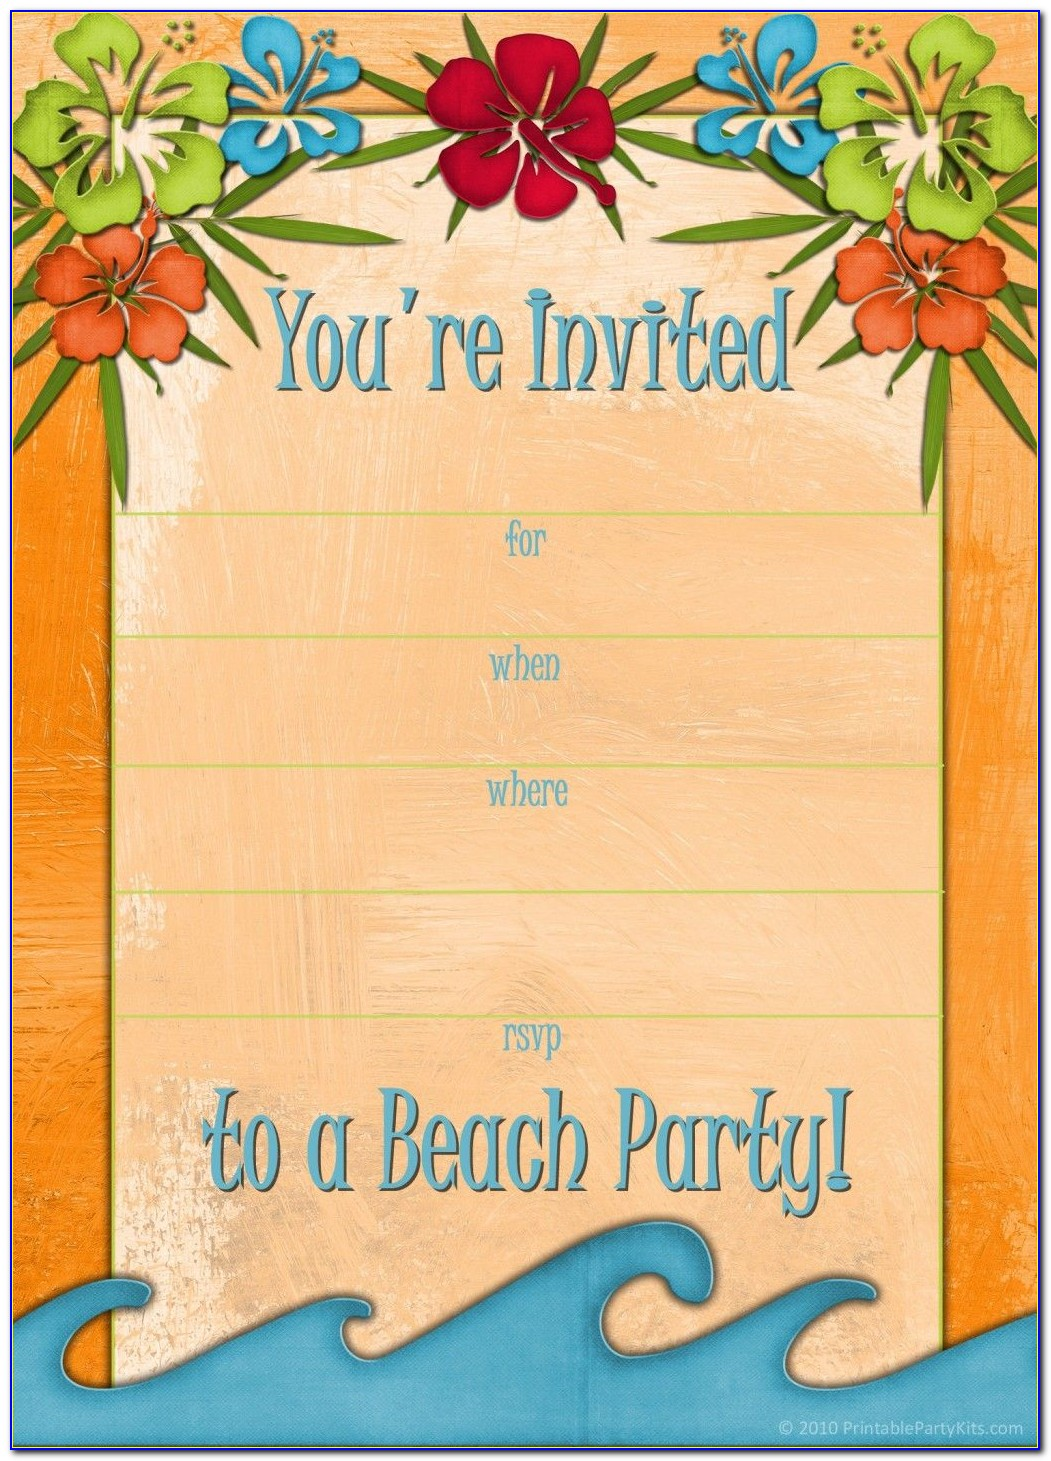 Free Printable Luau Party Invitations Templates